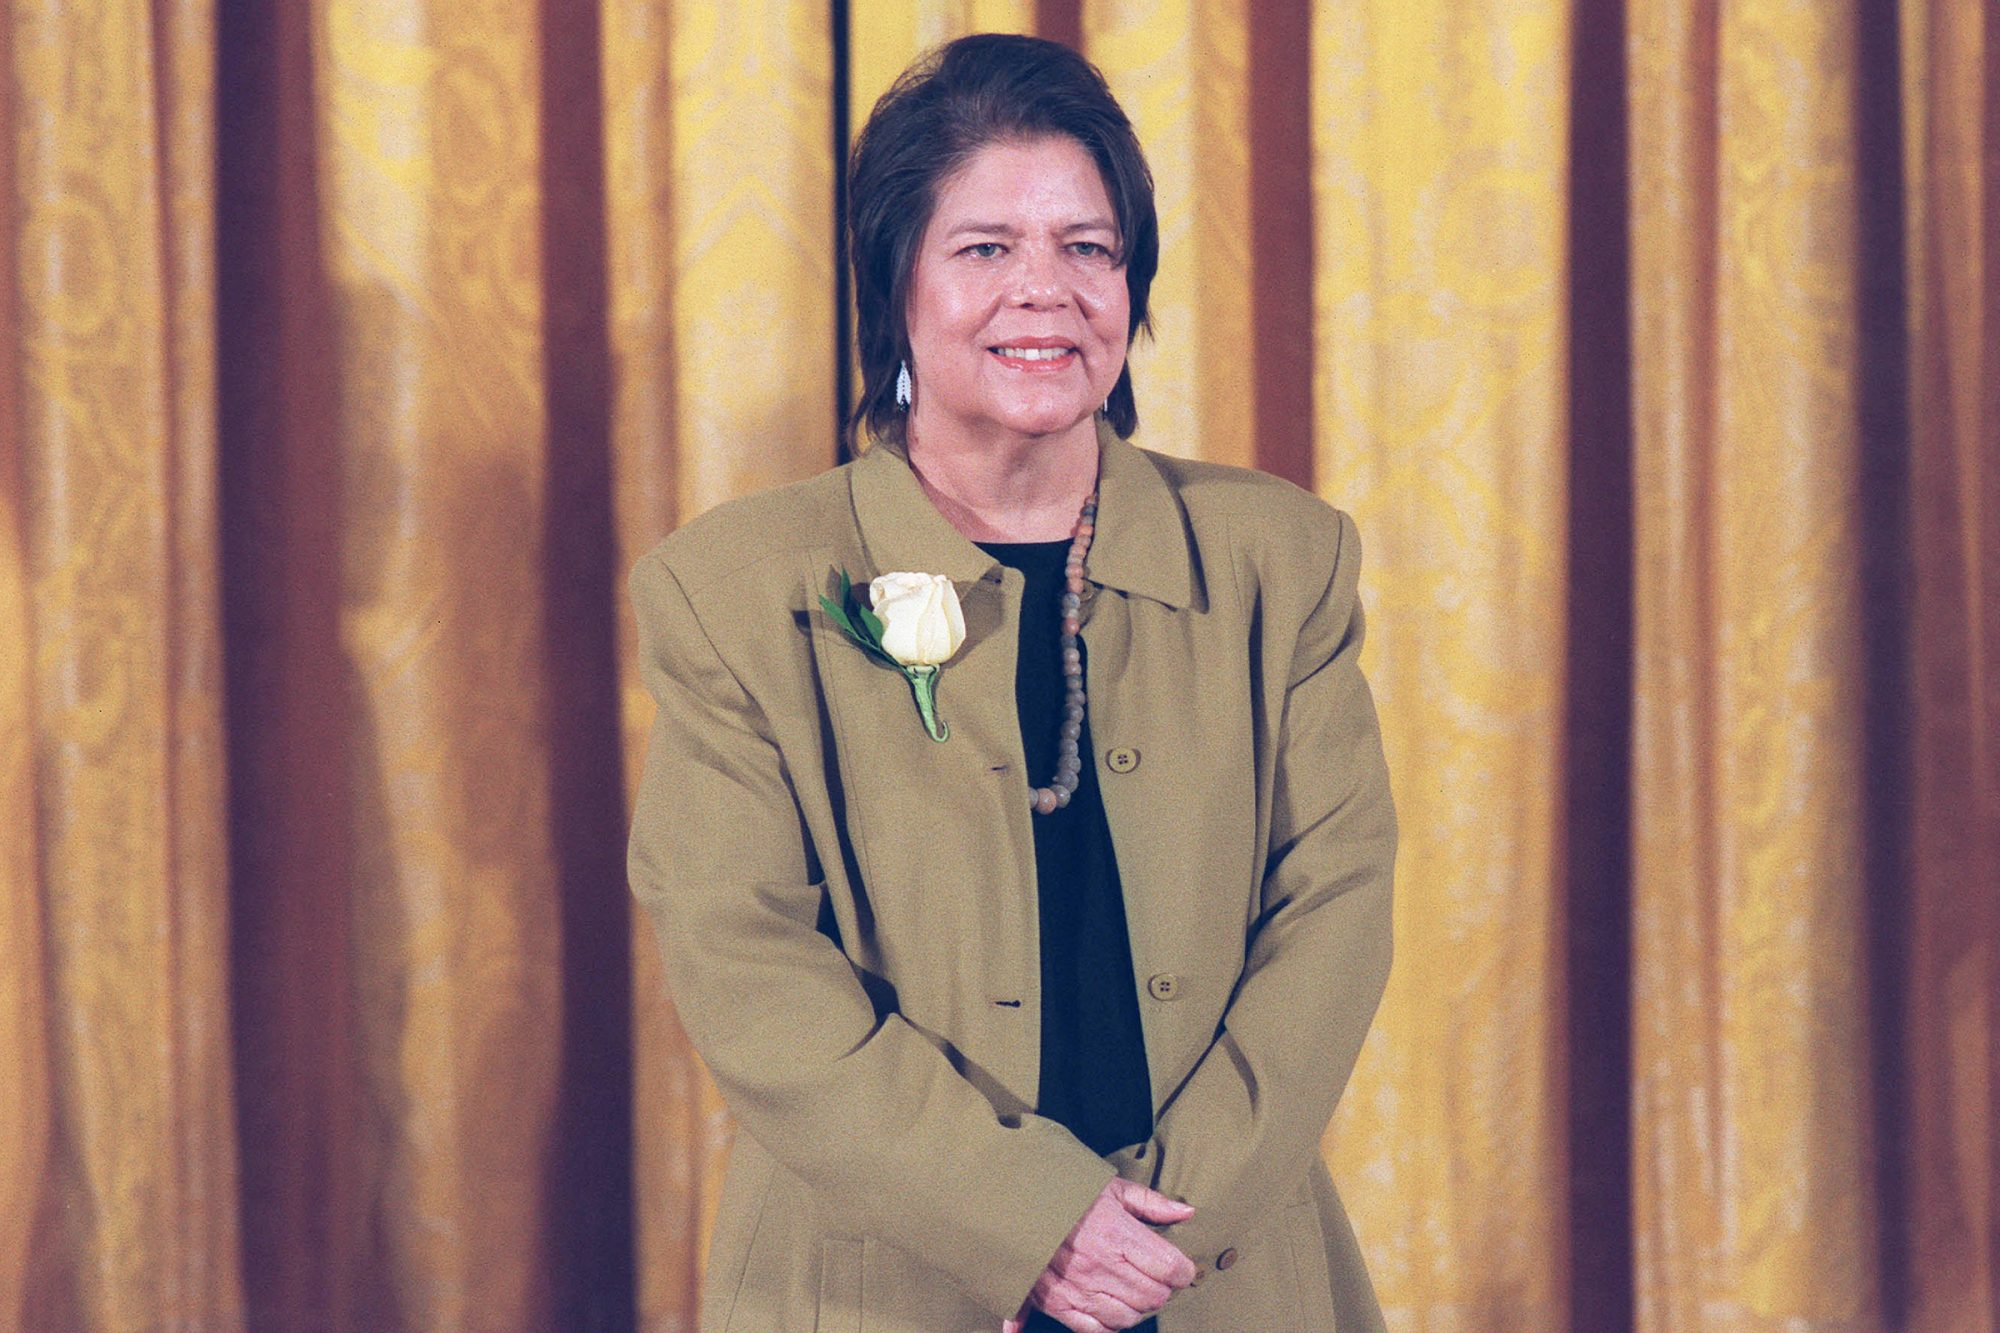 Wilma Mankiller Receives Medal Of Freedom At White House